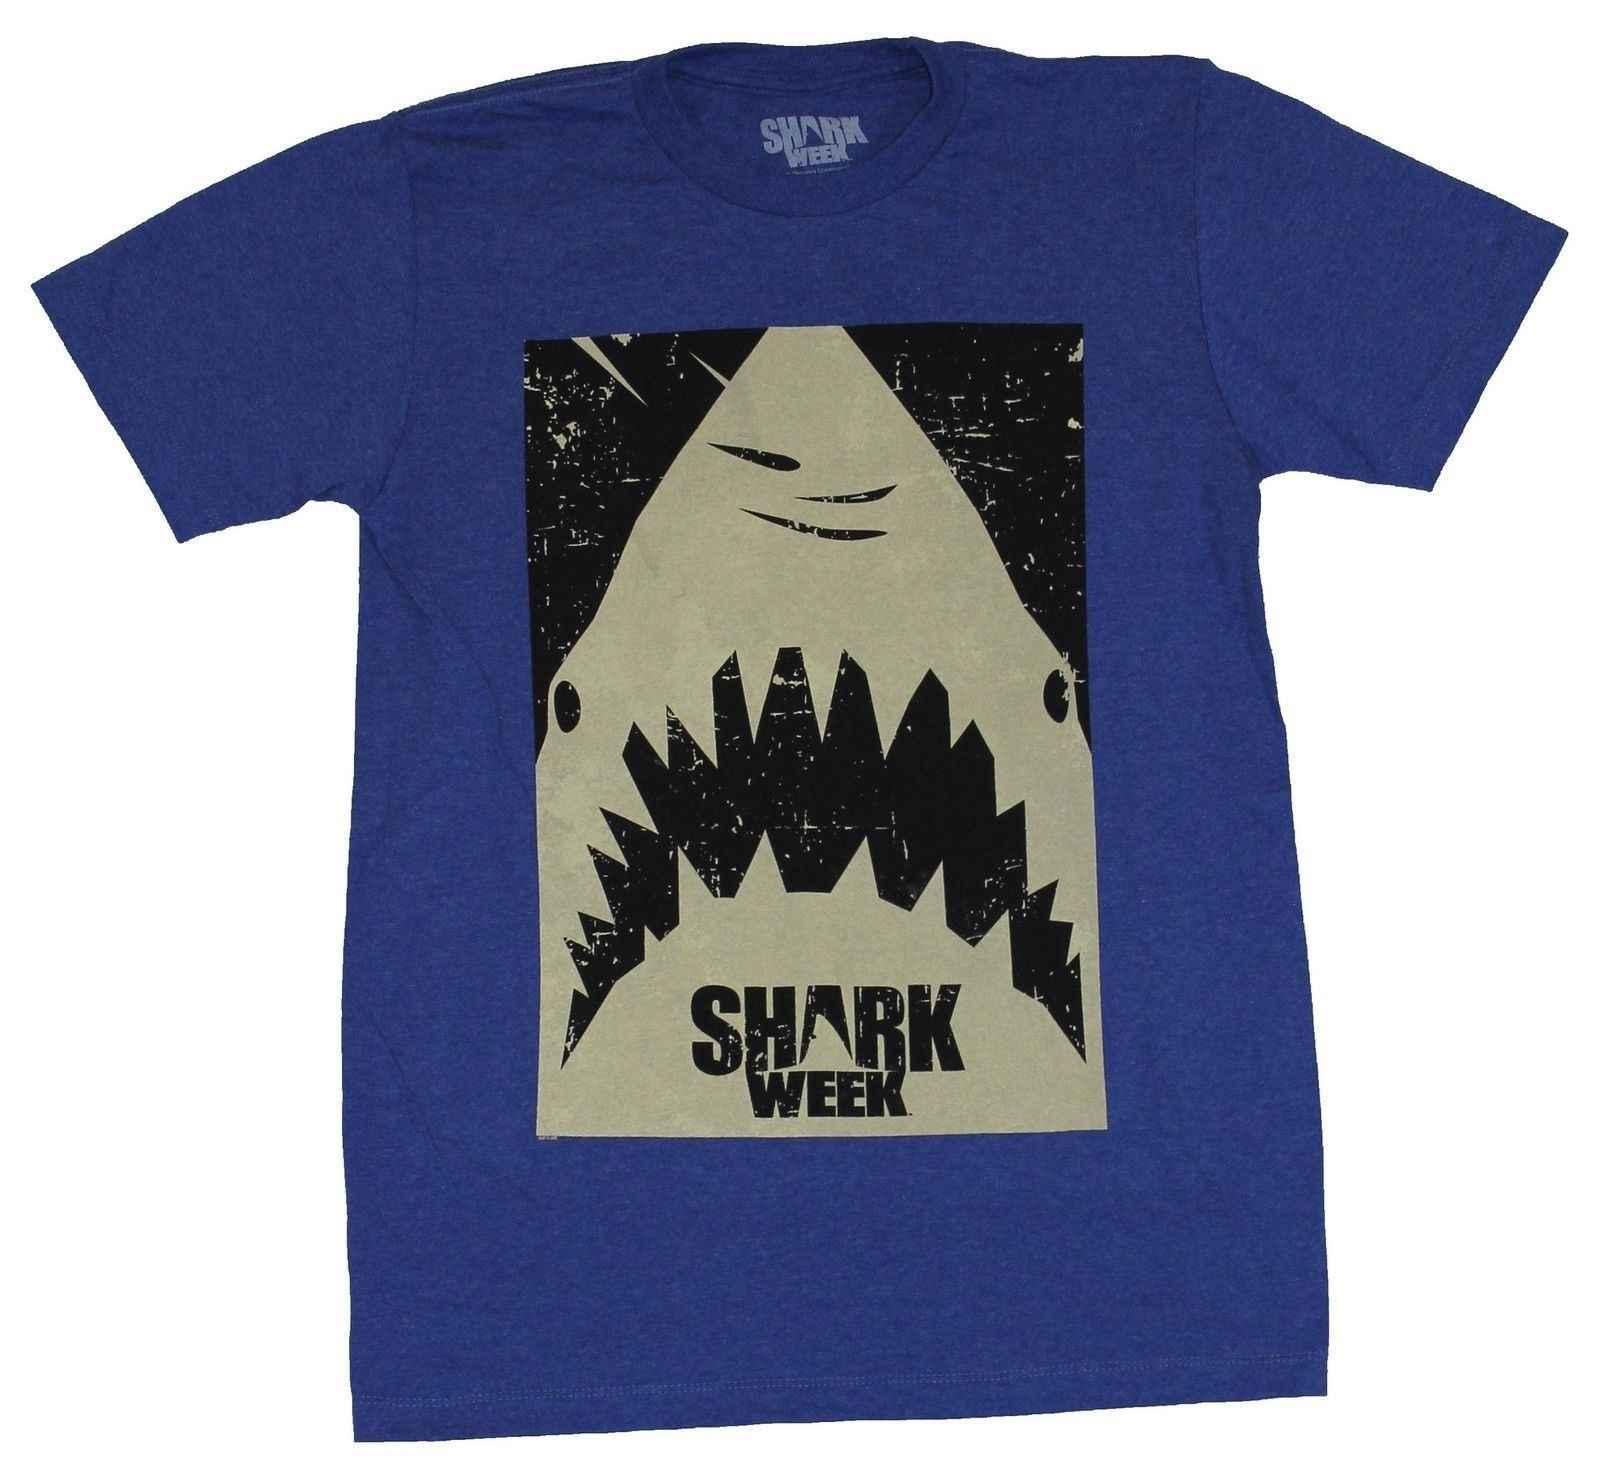 d1e2d6e5ea Detail Feedback Questions about Shark Week Mens T Shirt Stamped ...